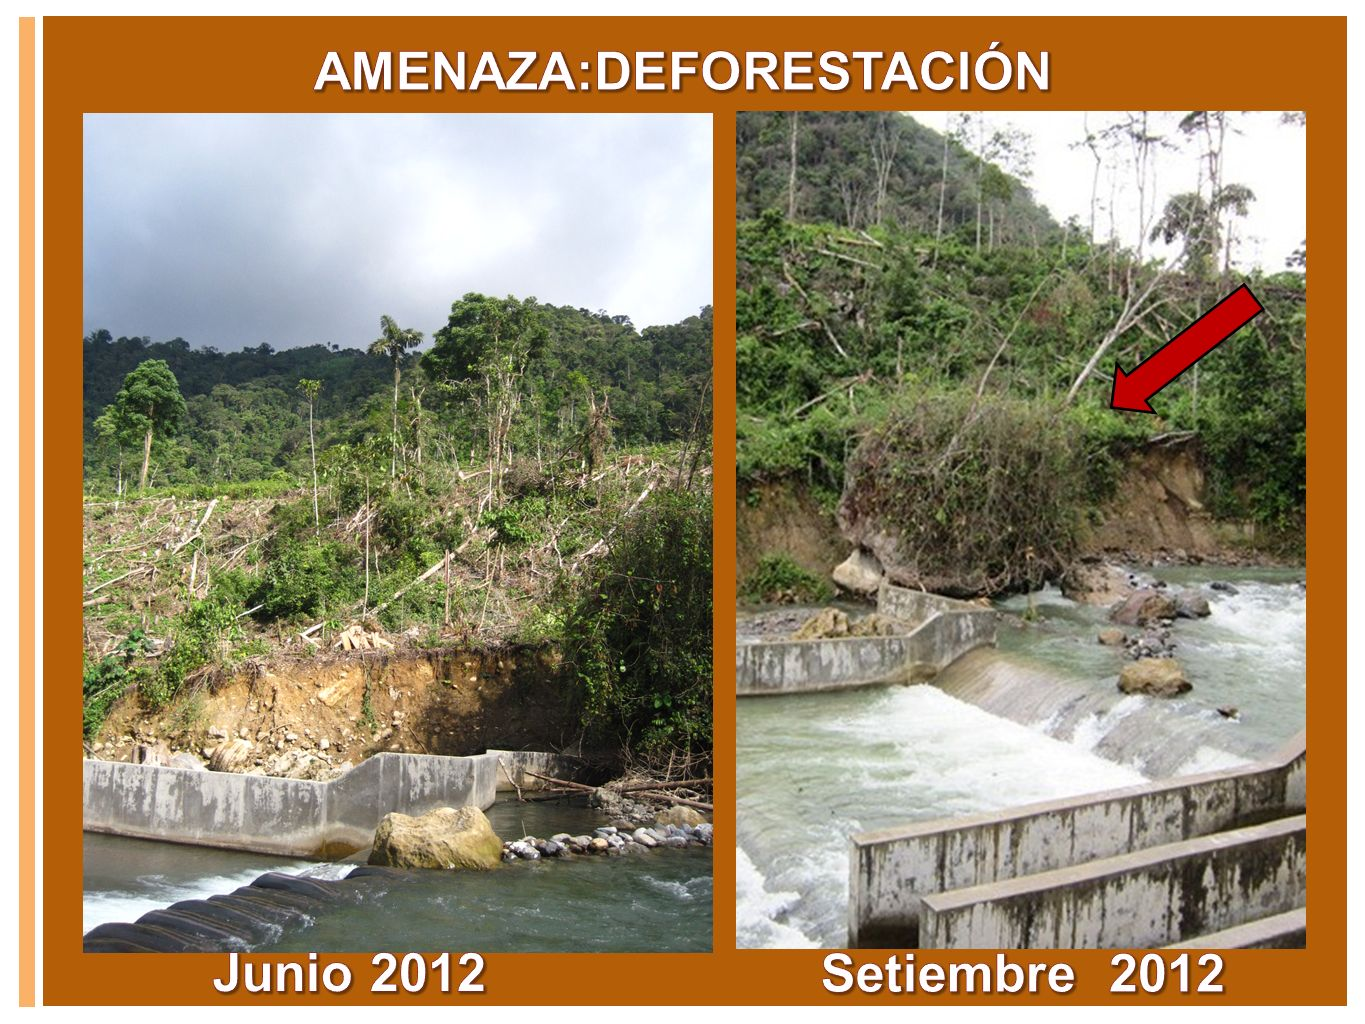 AMENAZA:DEFORESTACIÓN